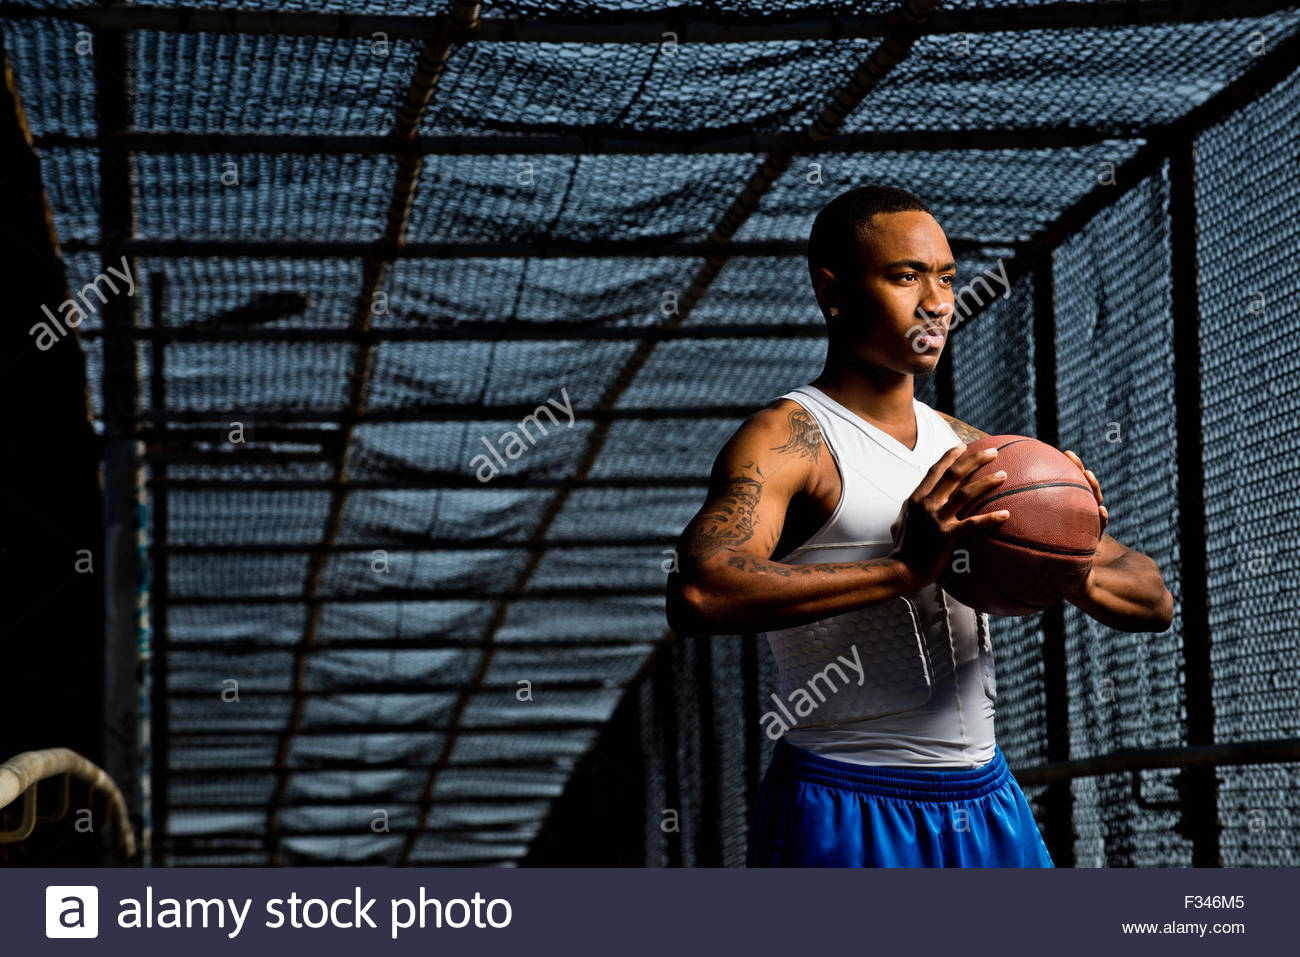 A young man poses with a basketball. - Stock Image